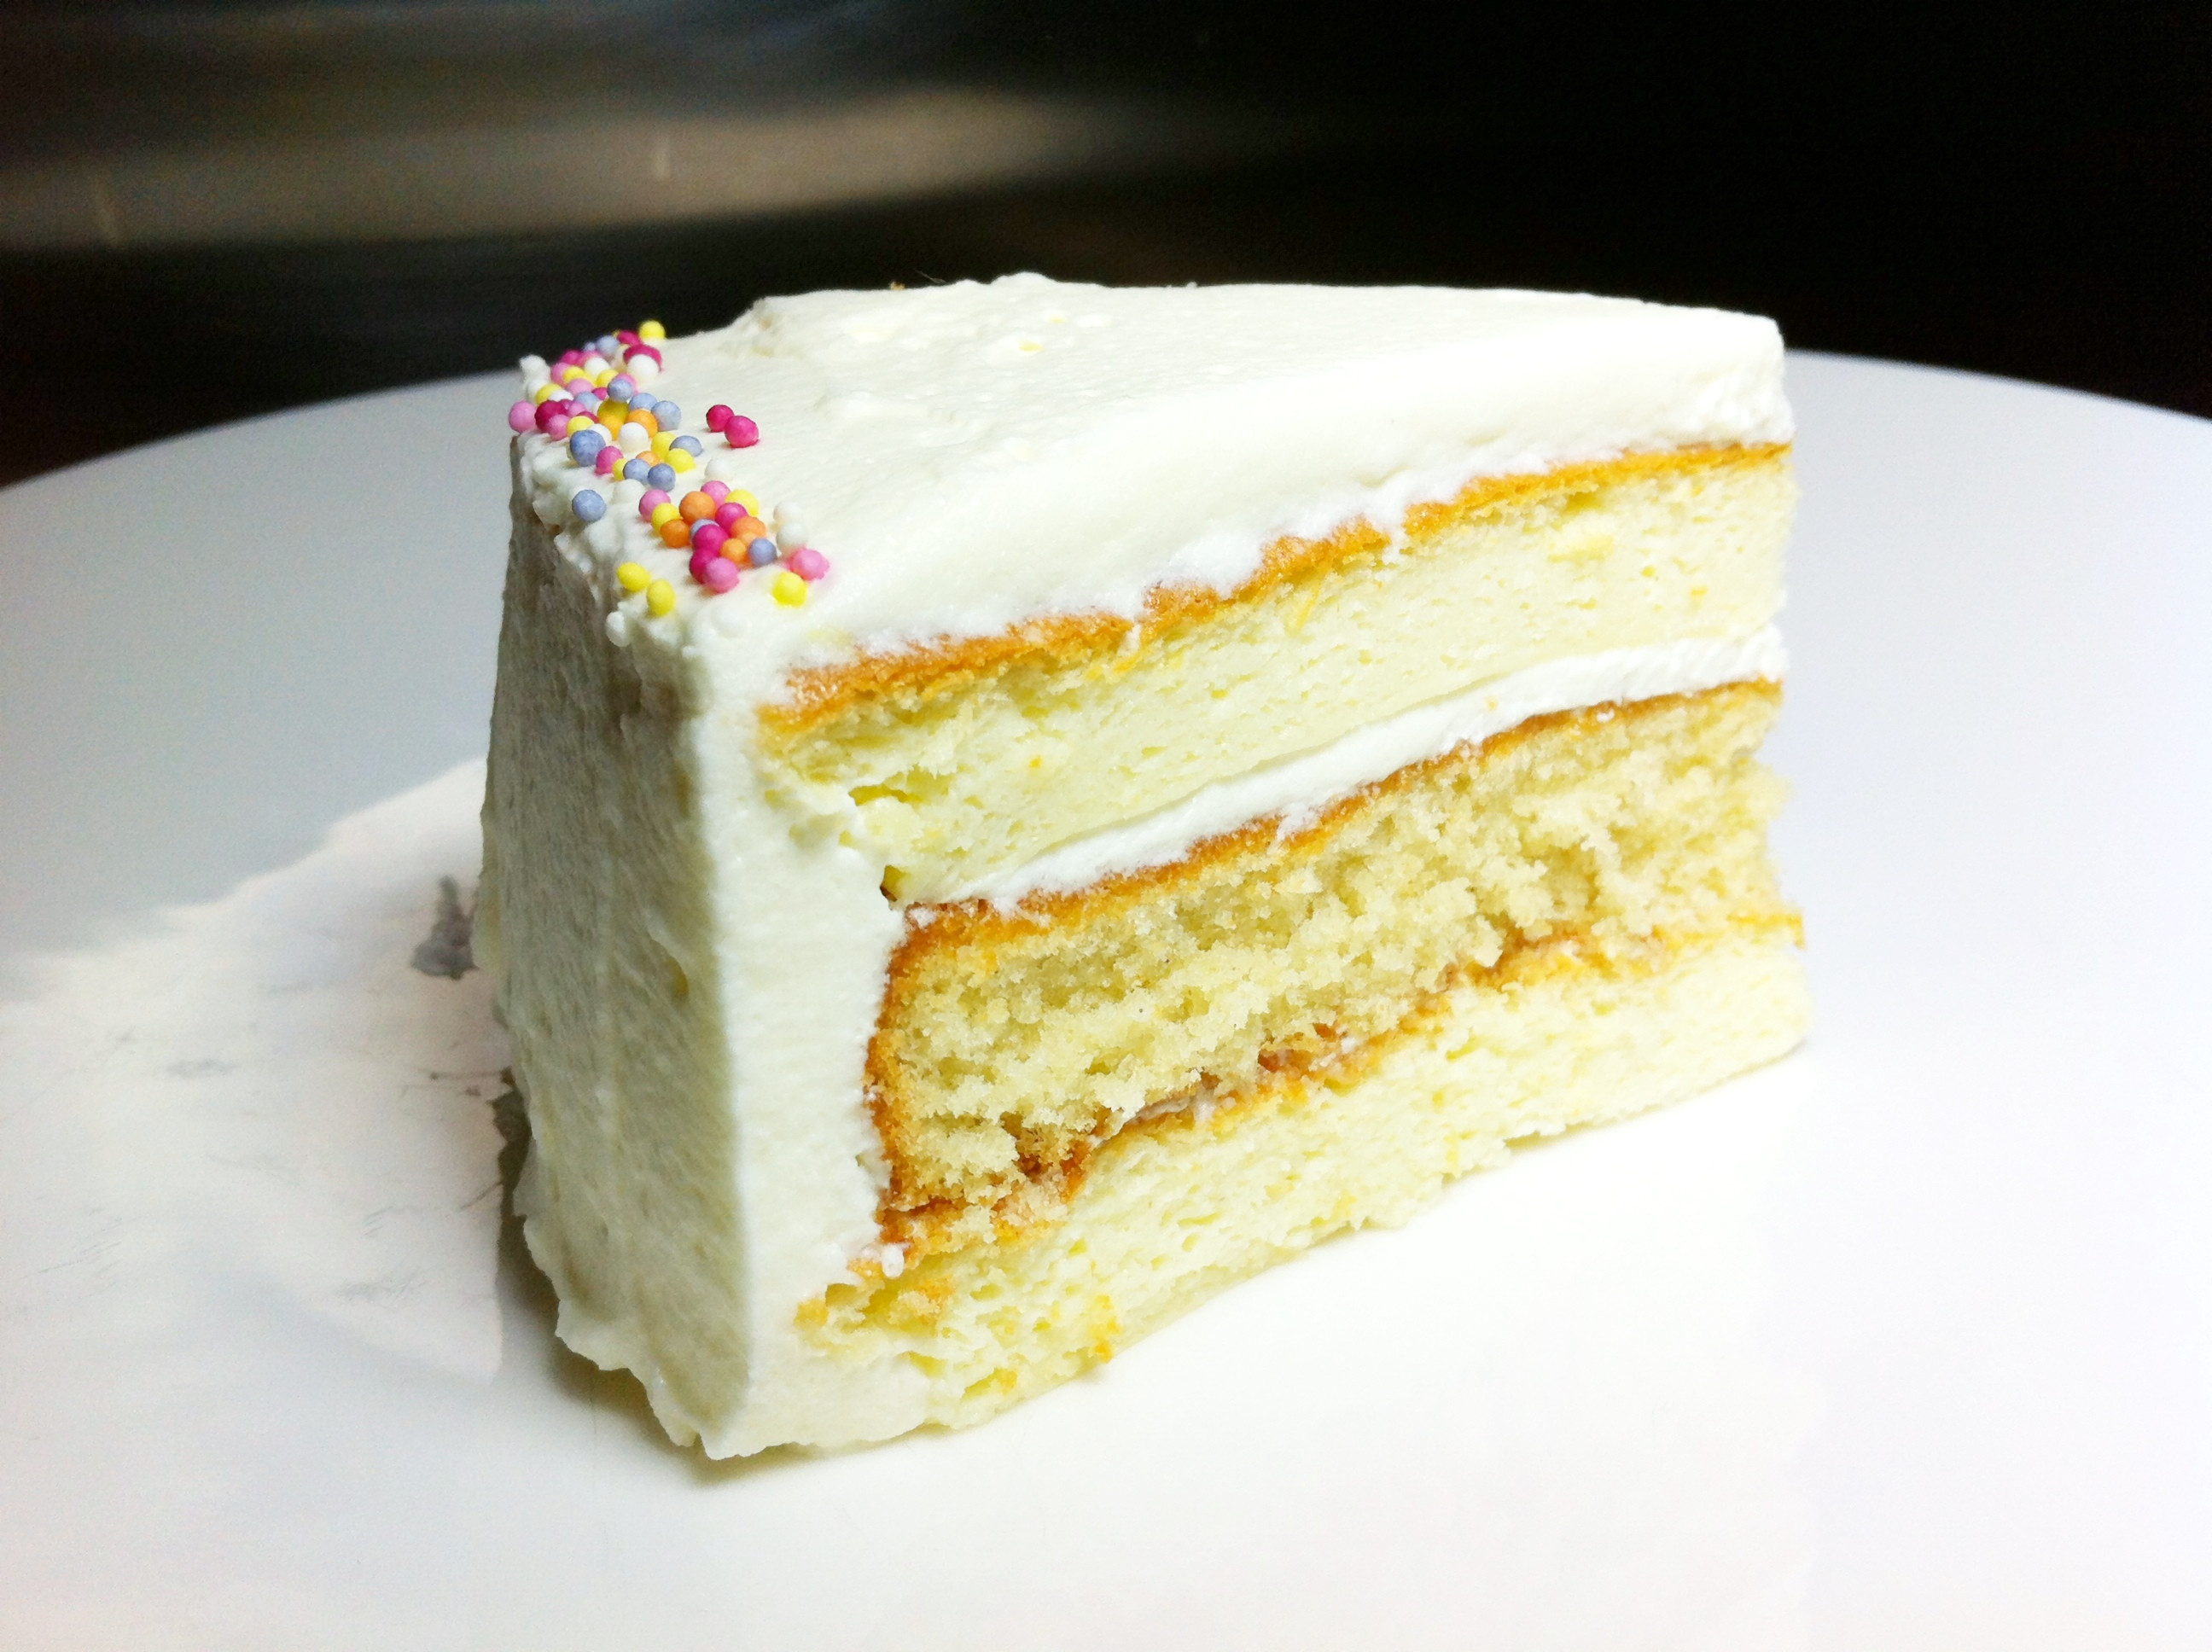 Japan Sponge Cake Recipe  East meets West A Japanese cheesecake and sponge layered